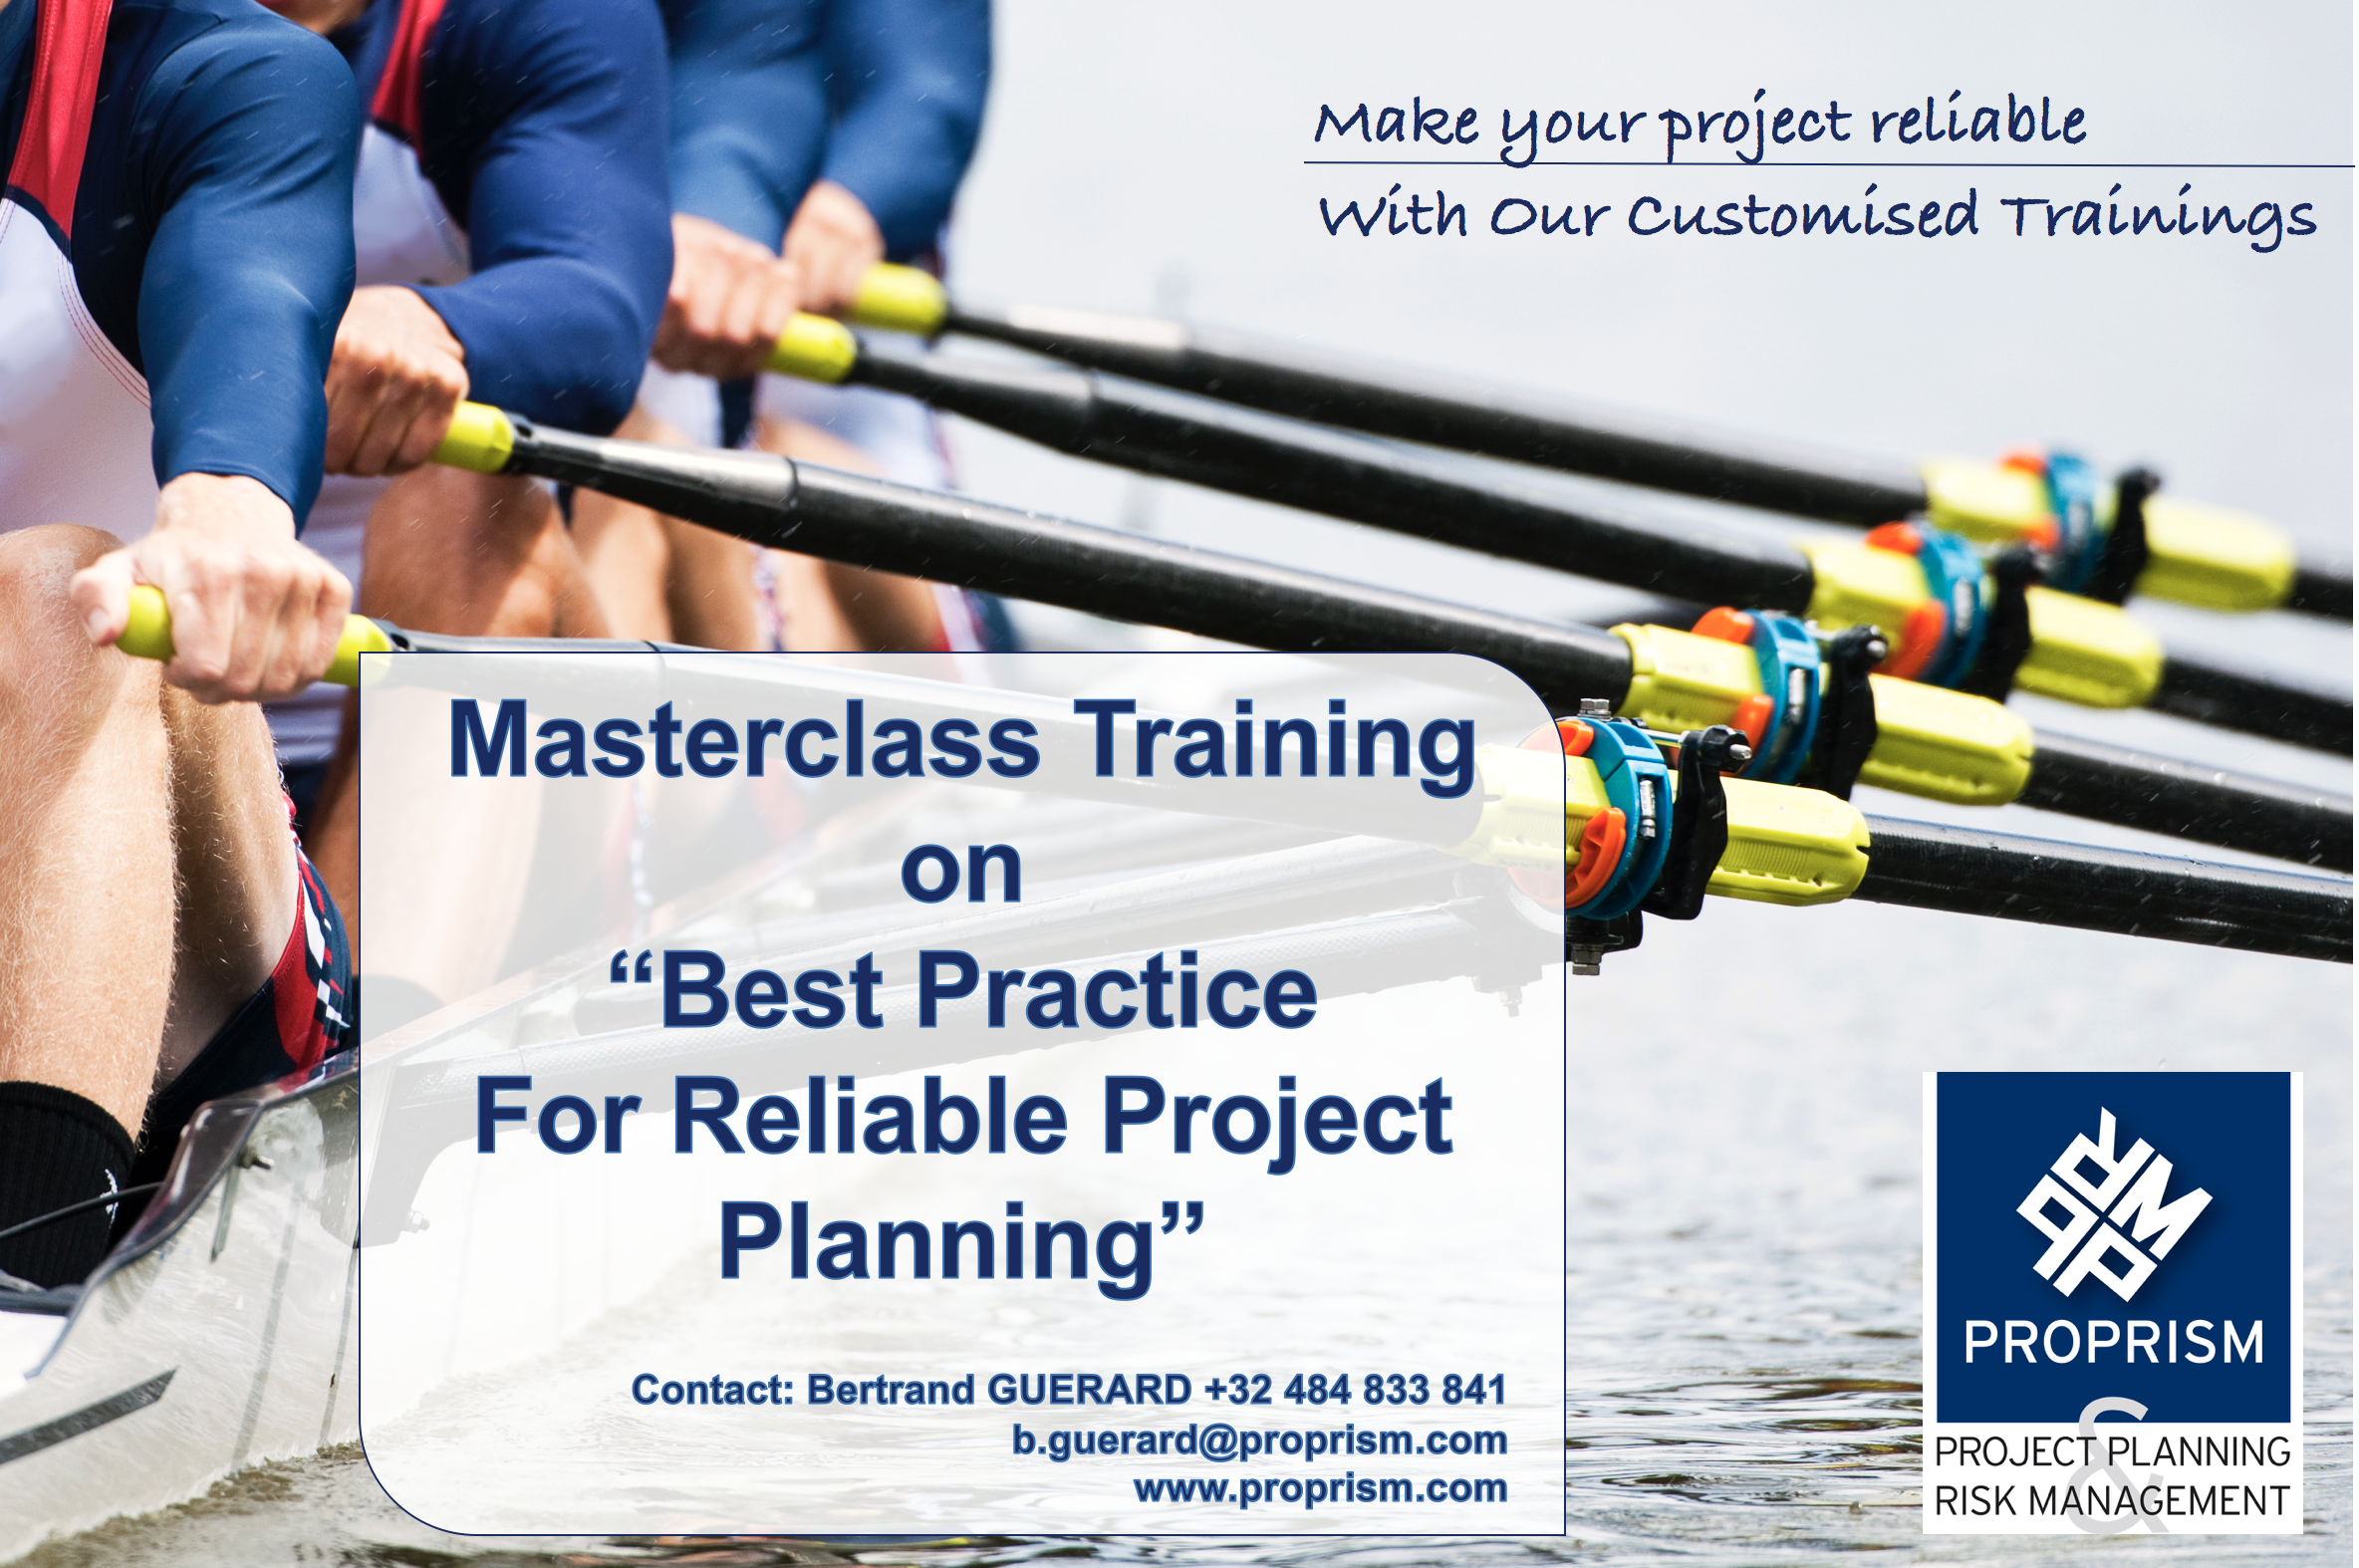 Masterclass Best Practice for Project Planning